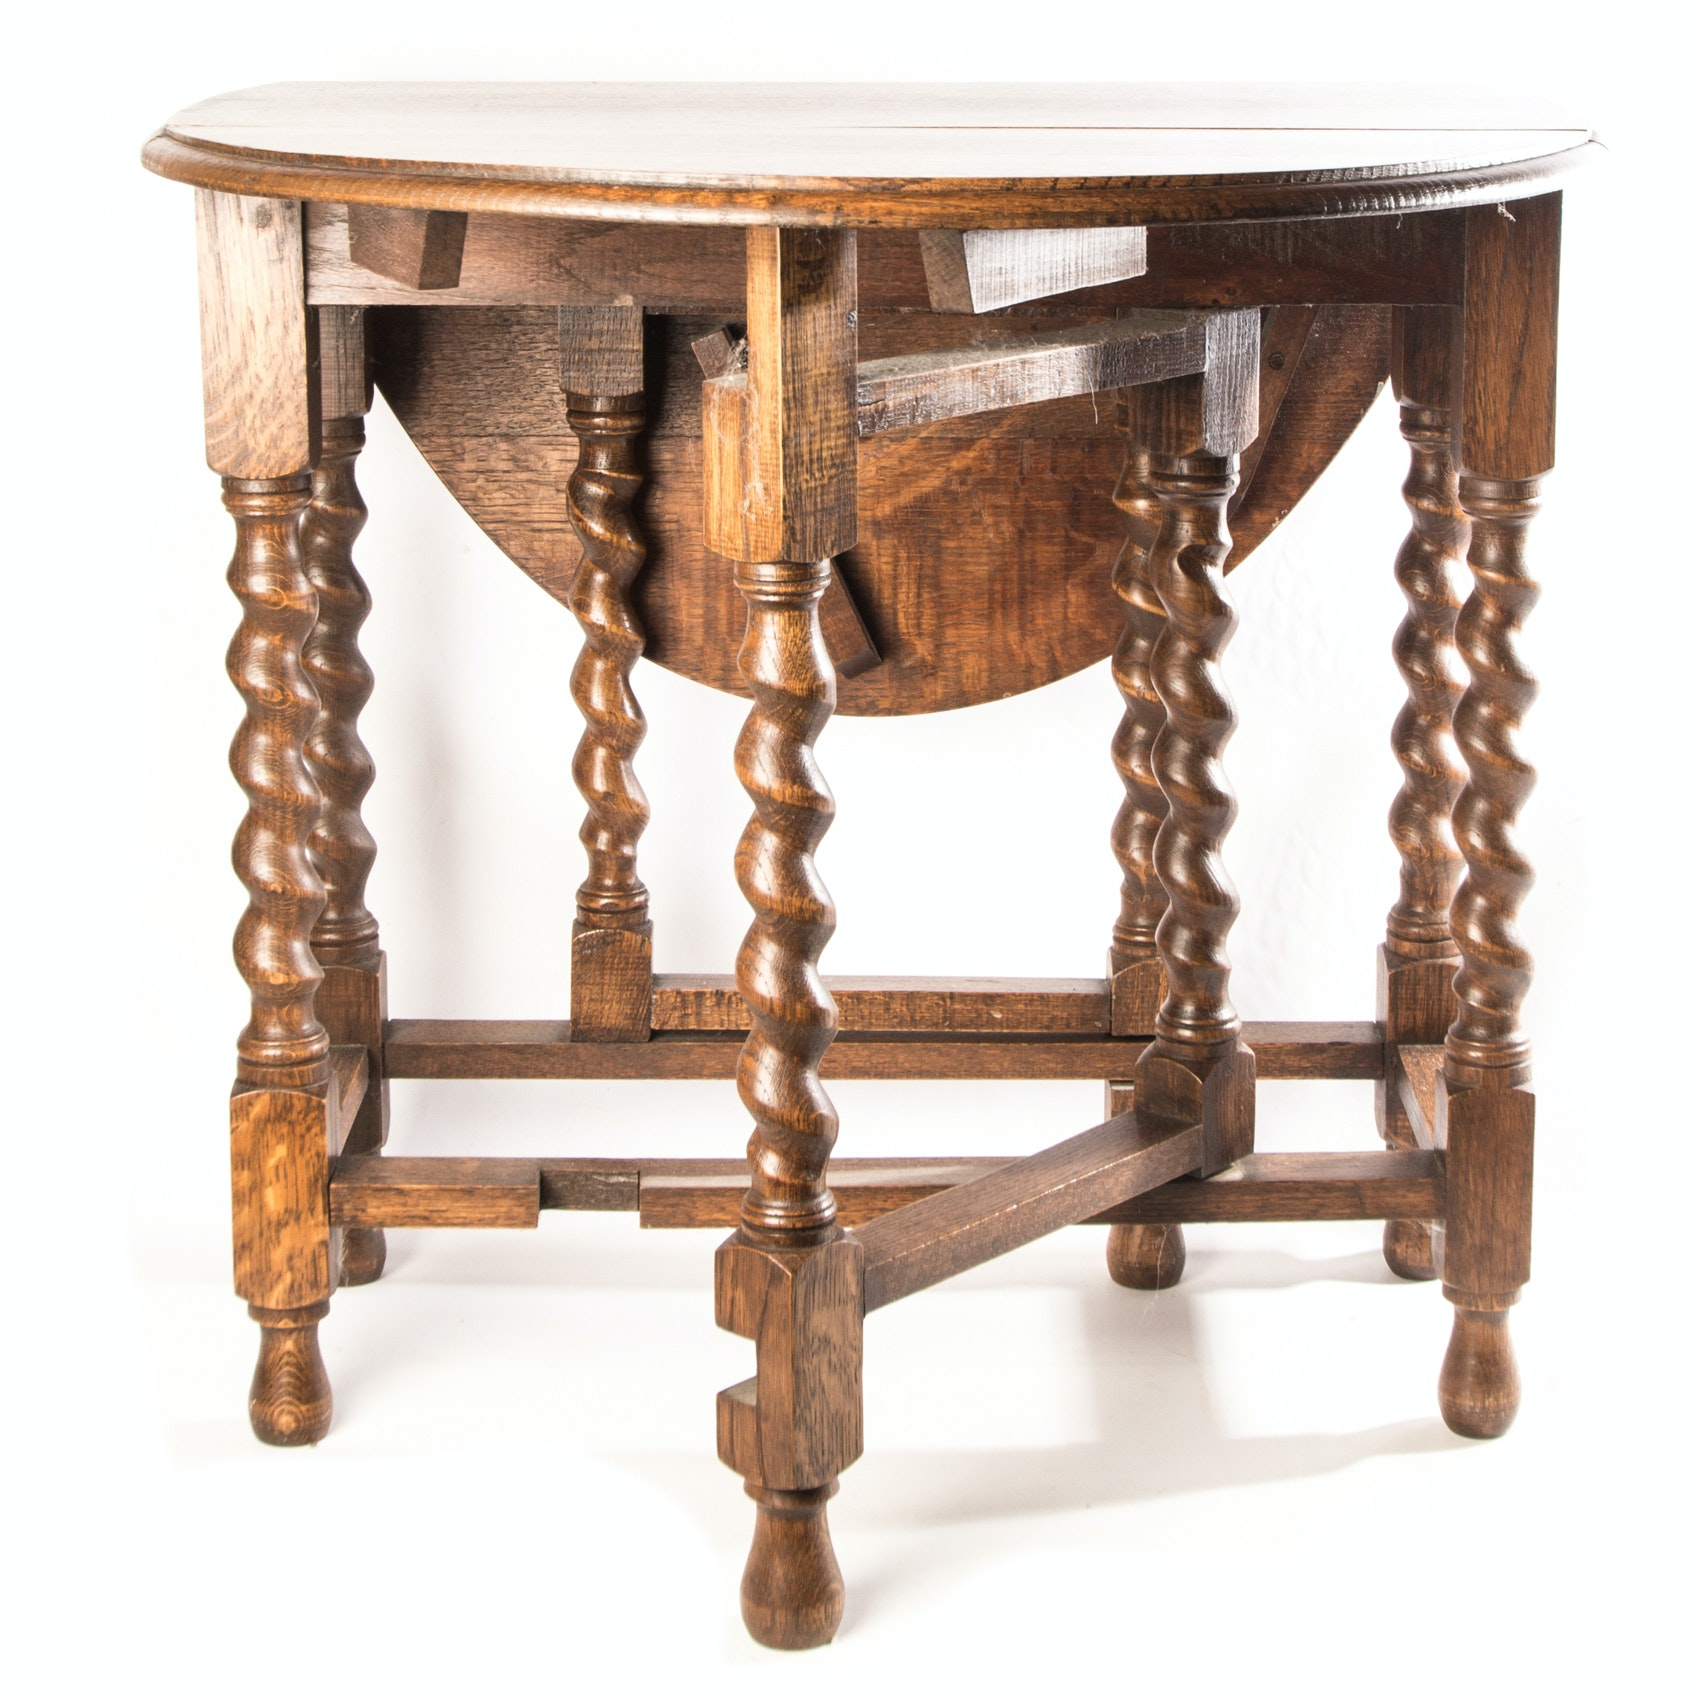 Vintage William and Mary Style Gateleg Table